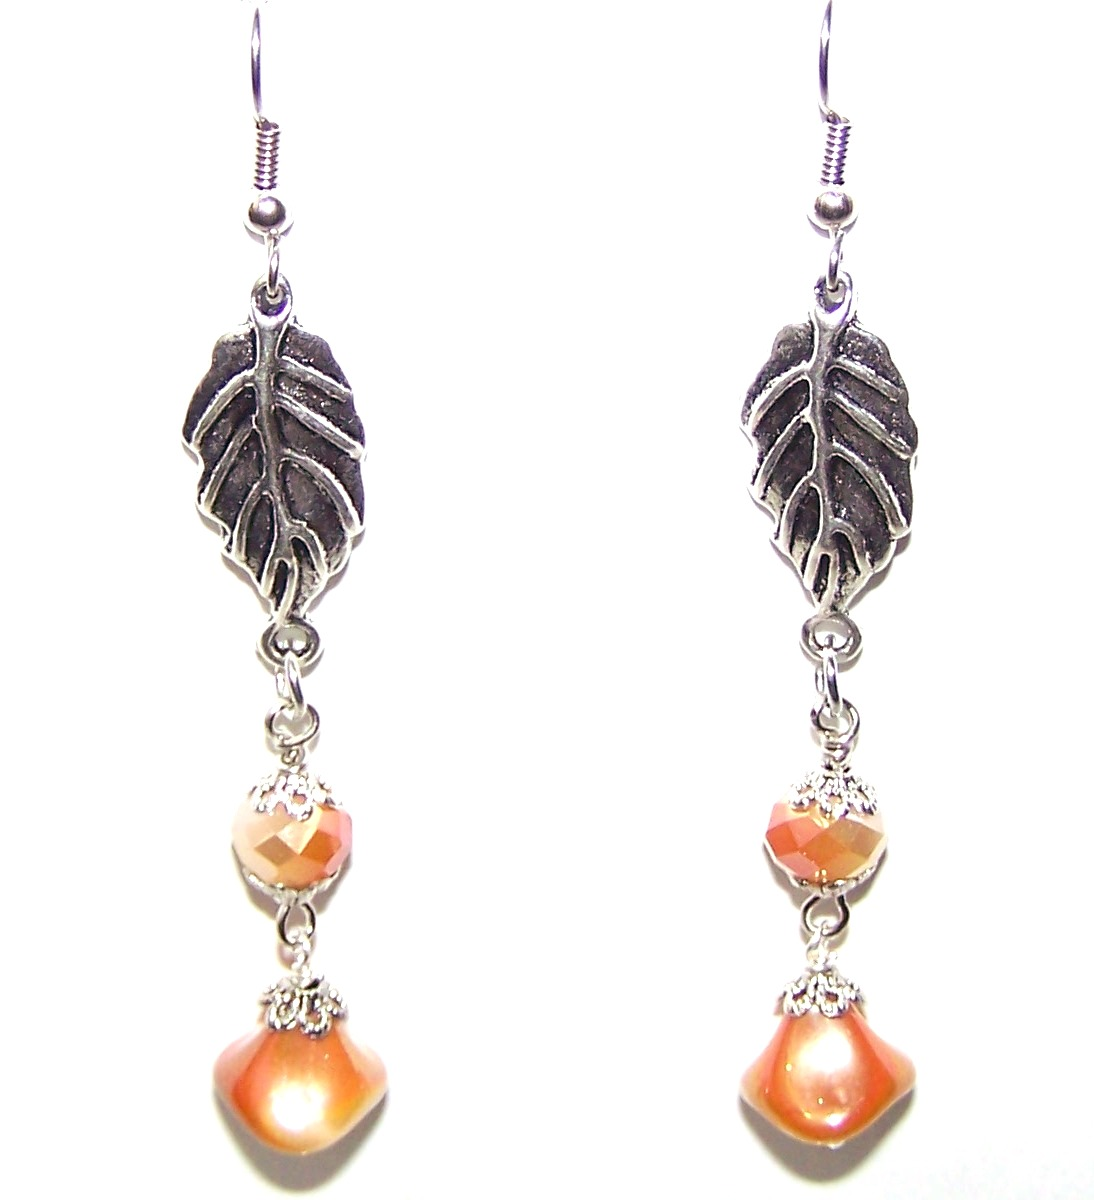 Apricot Luster Earrings Free Beaded Jewelry Making Pattern